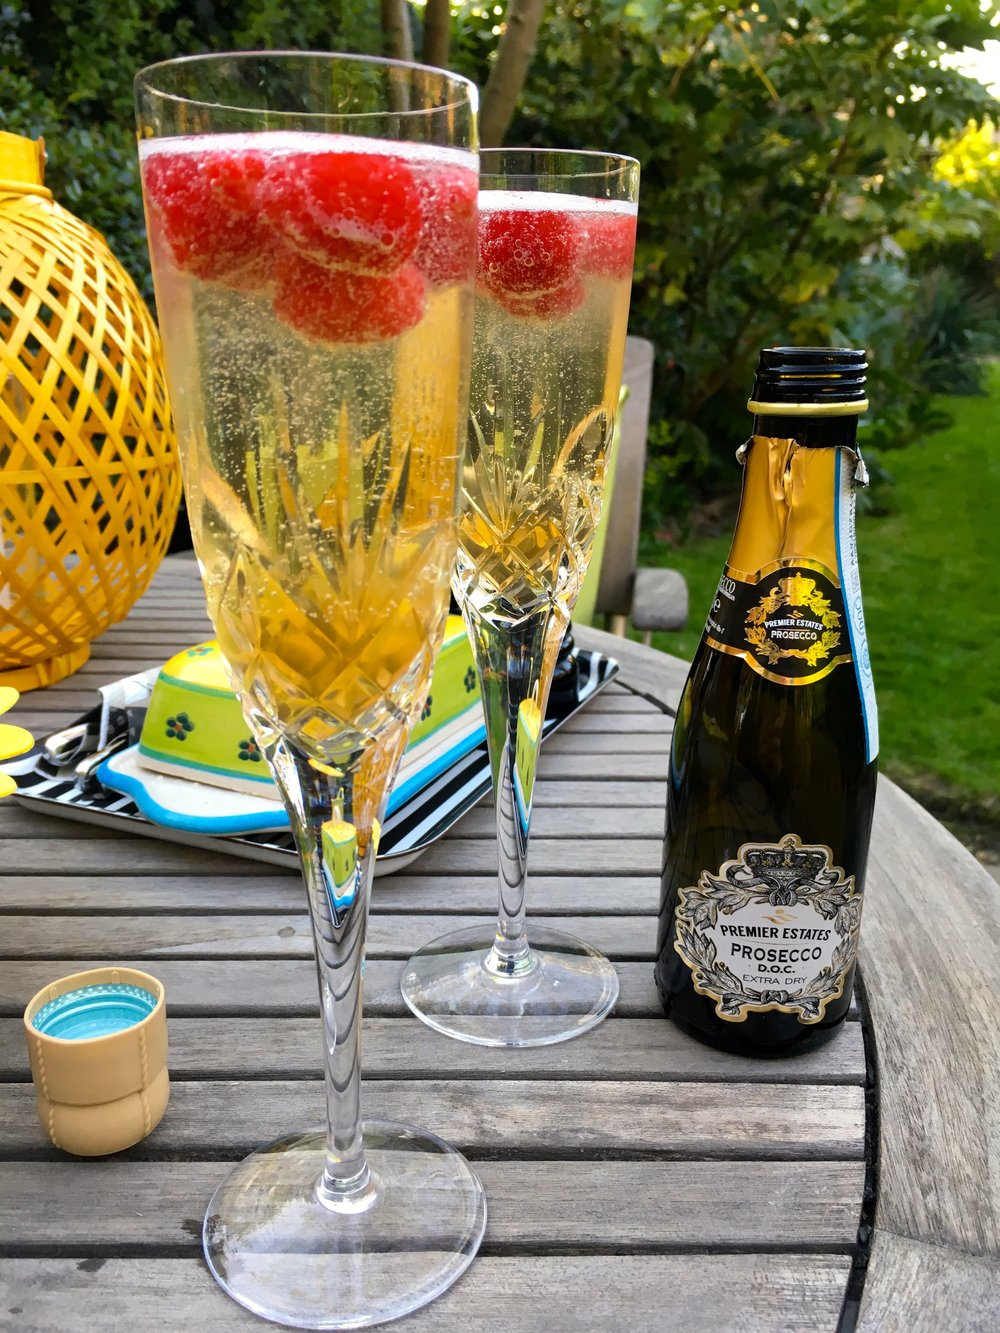 Enjoying an aperitif - prosecco from premier estates wine, elderflower liqueur and frozen raspberries grown on our allotment